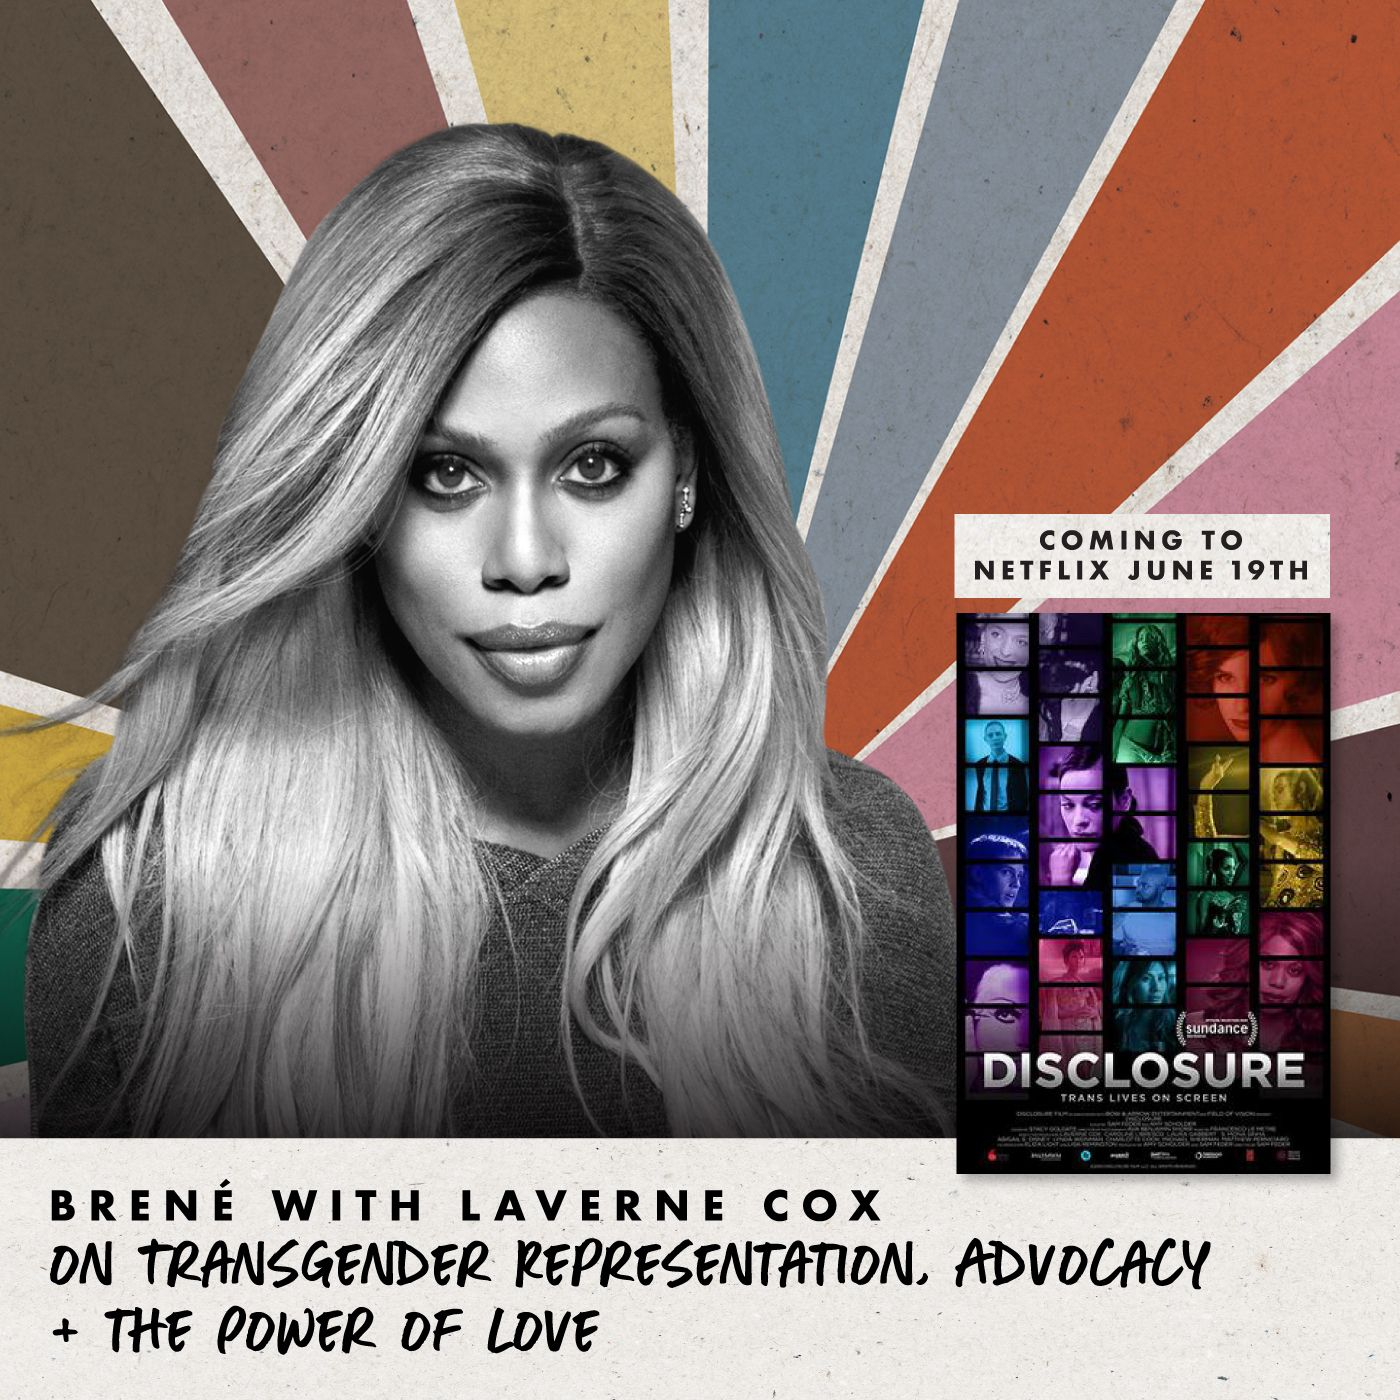 Brené with Laverne Cox on Transgender Representation, Advocacy + the Power of Love